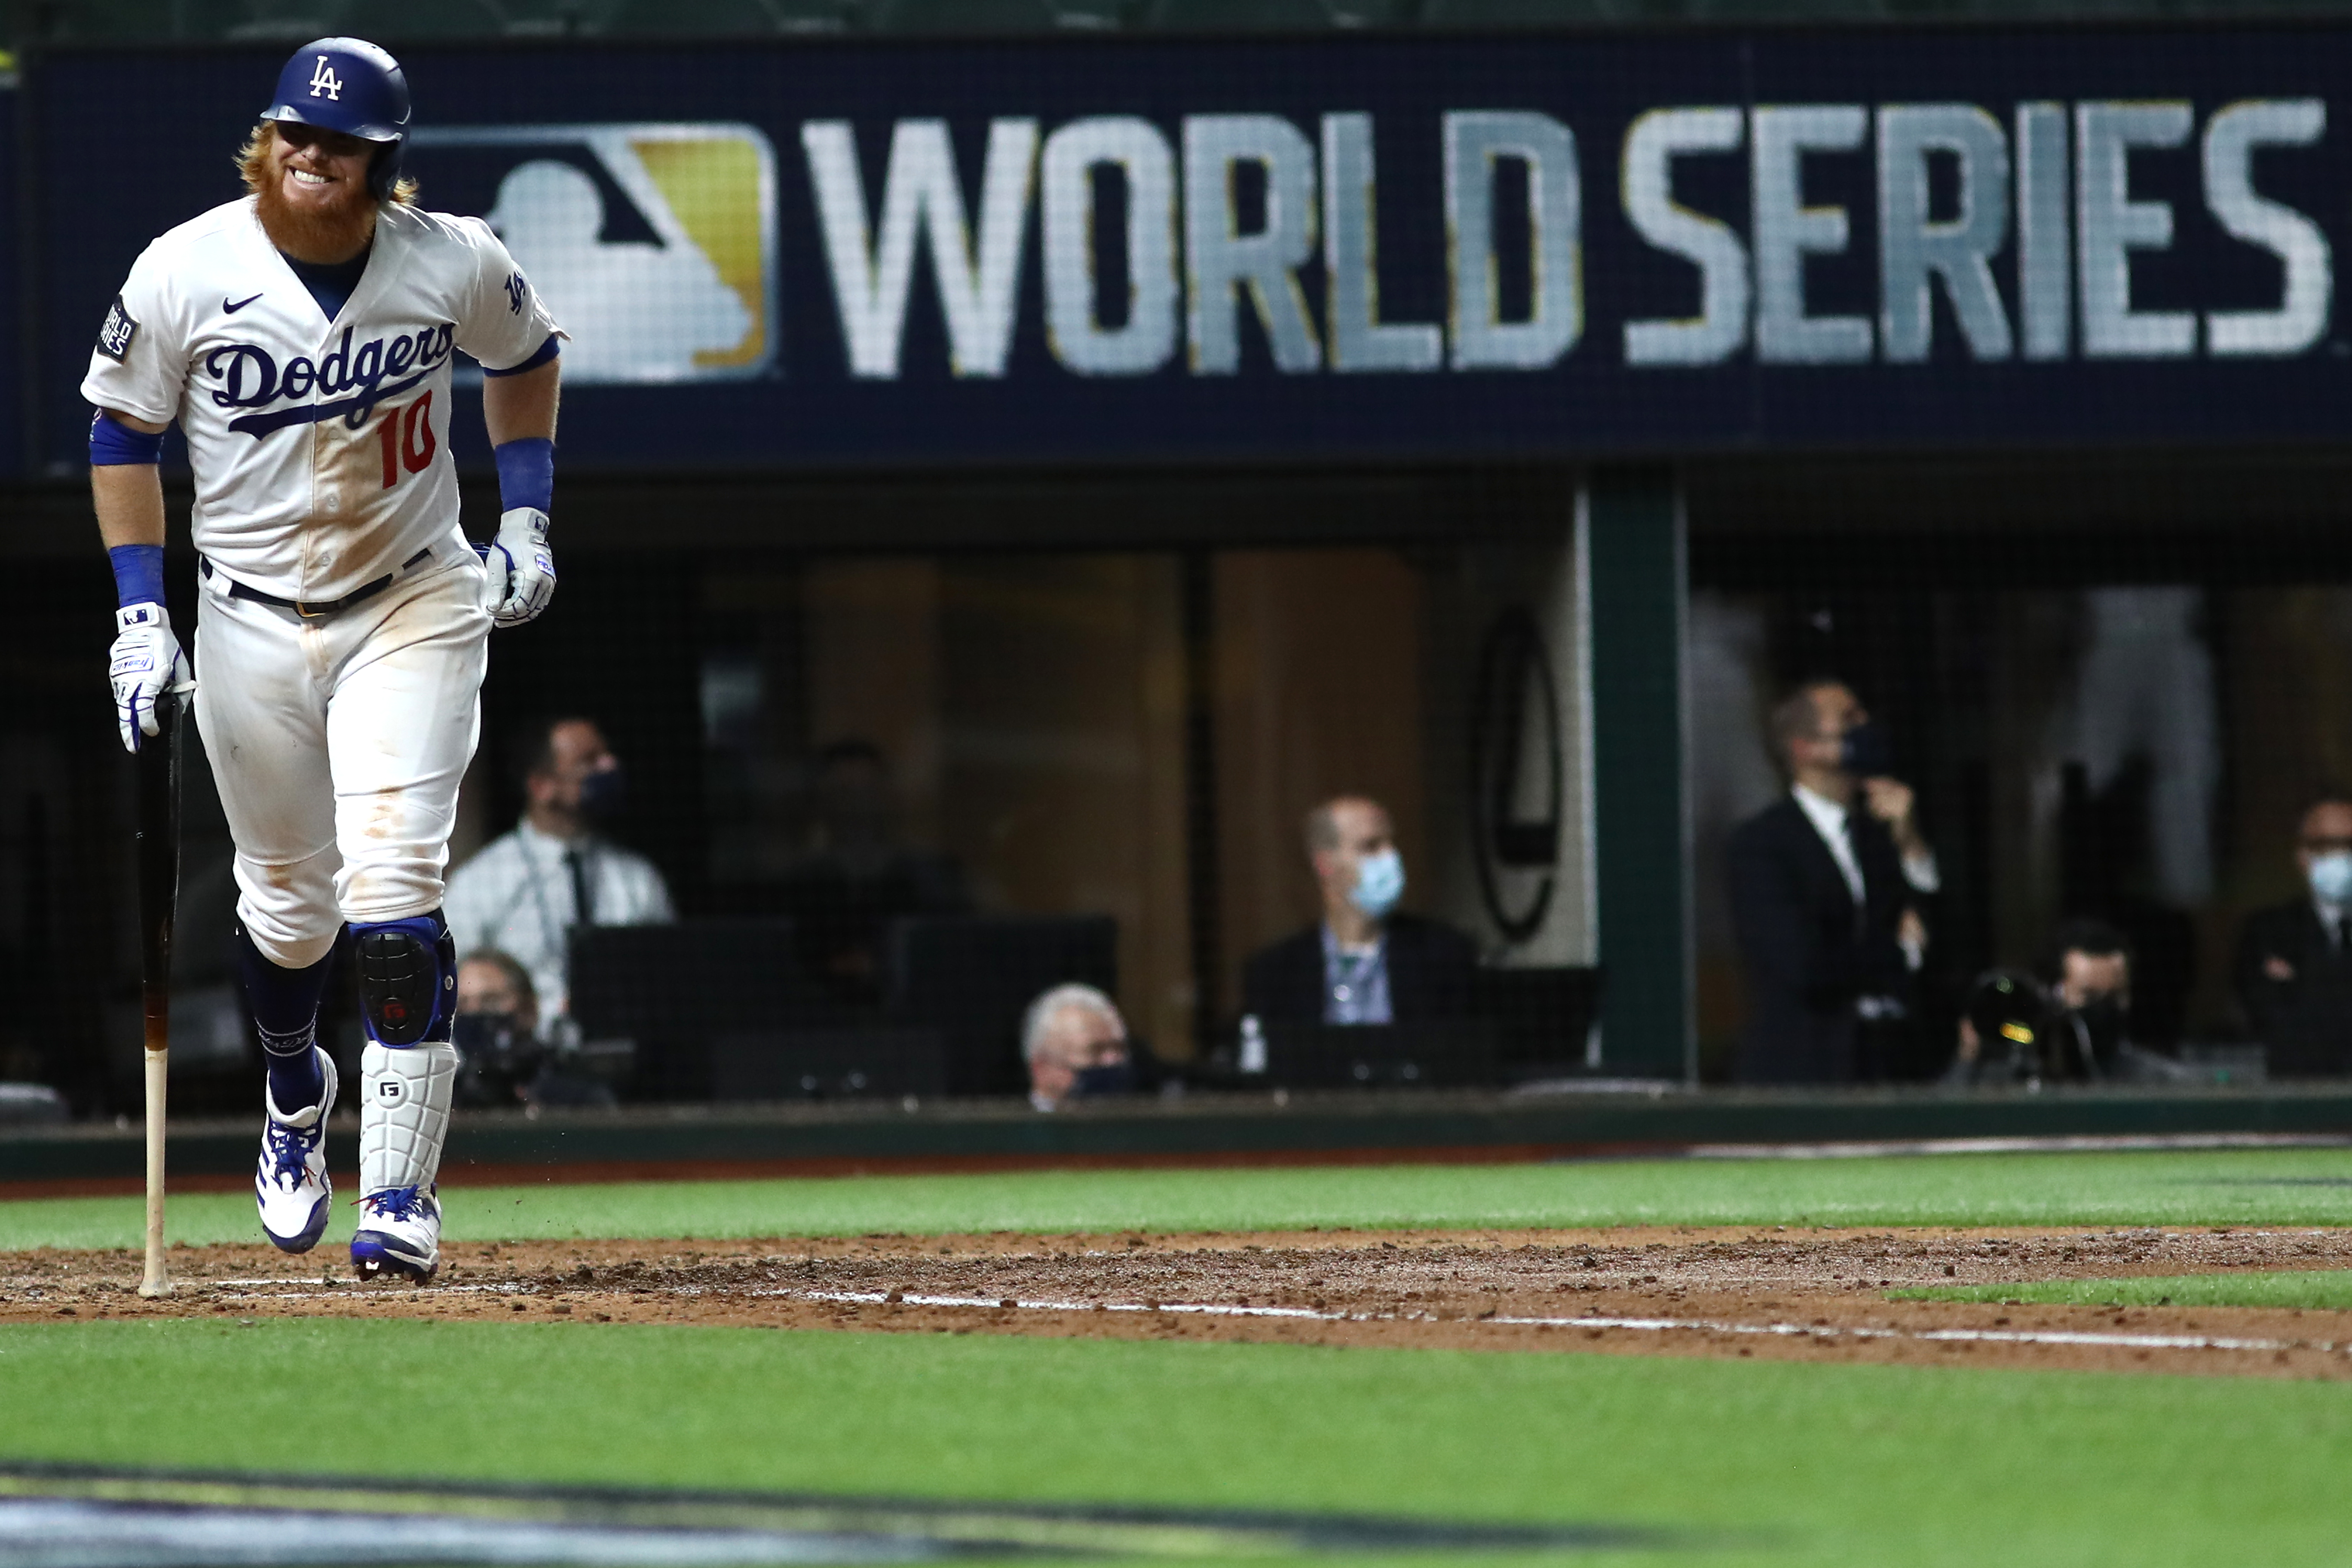 Justin Turner #10 of the Los Angeles Dodgers reacts after flying out against the Tampa Bay Rays during the sixth inning in Game Six of the 2020 MLB World Series at Globe Life Field on October 27, 2020 in Arlington, Texas.